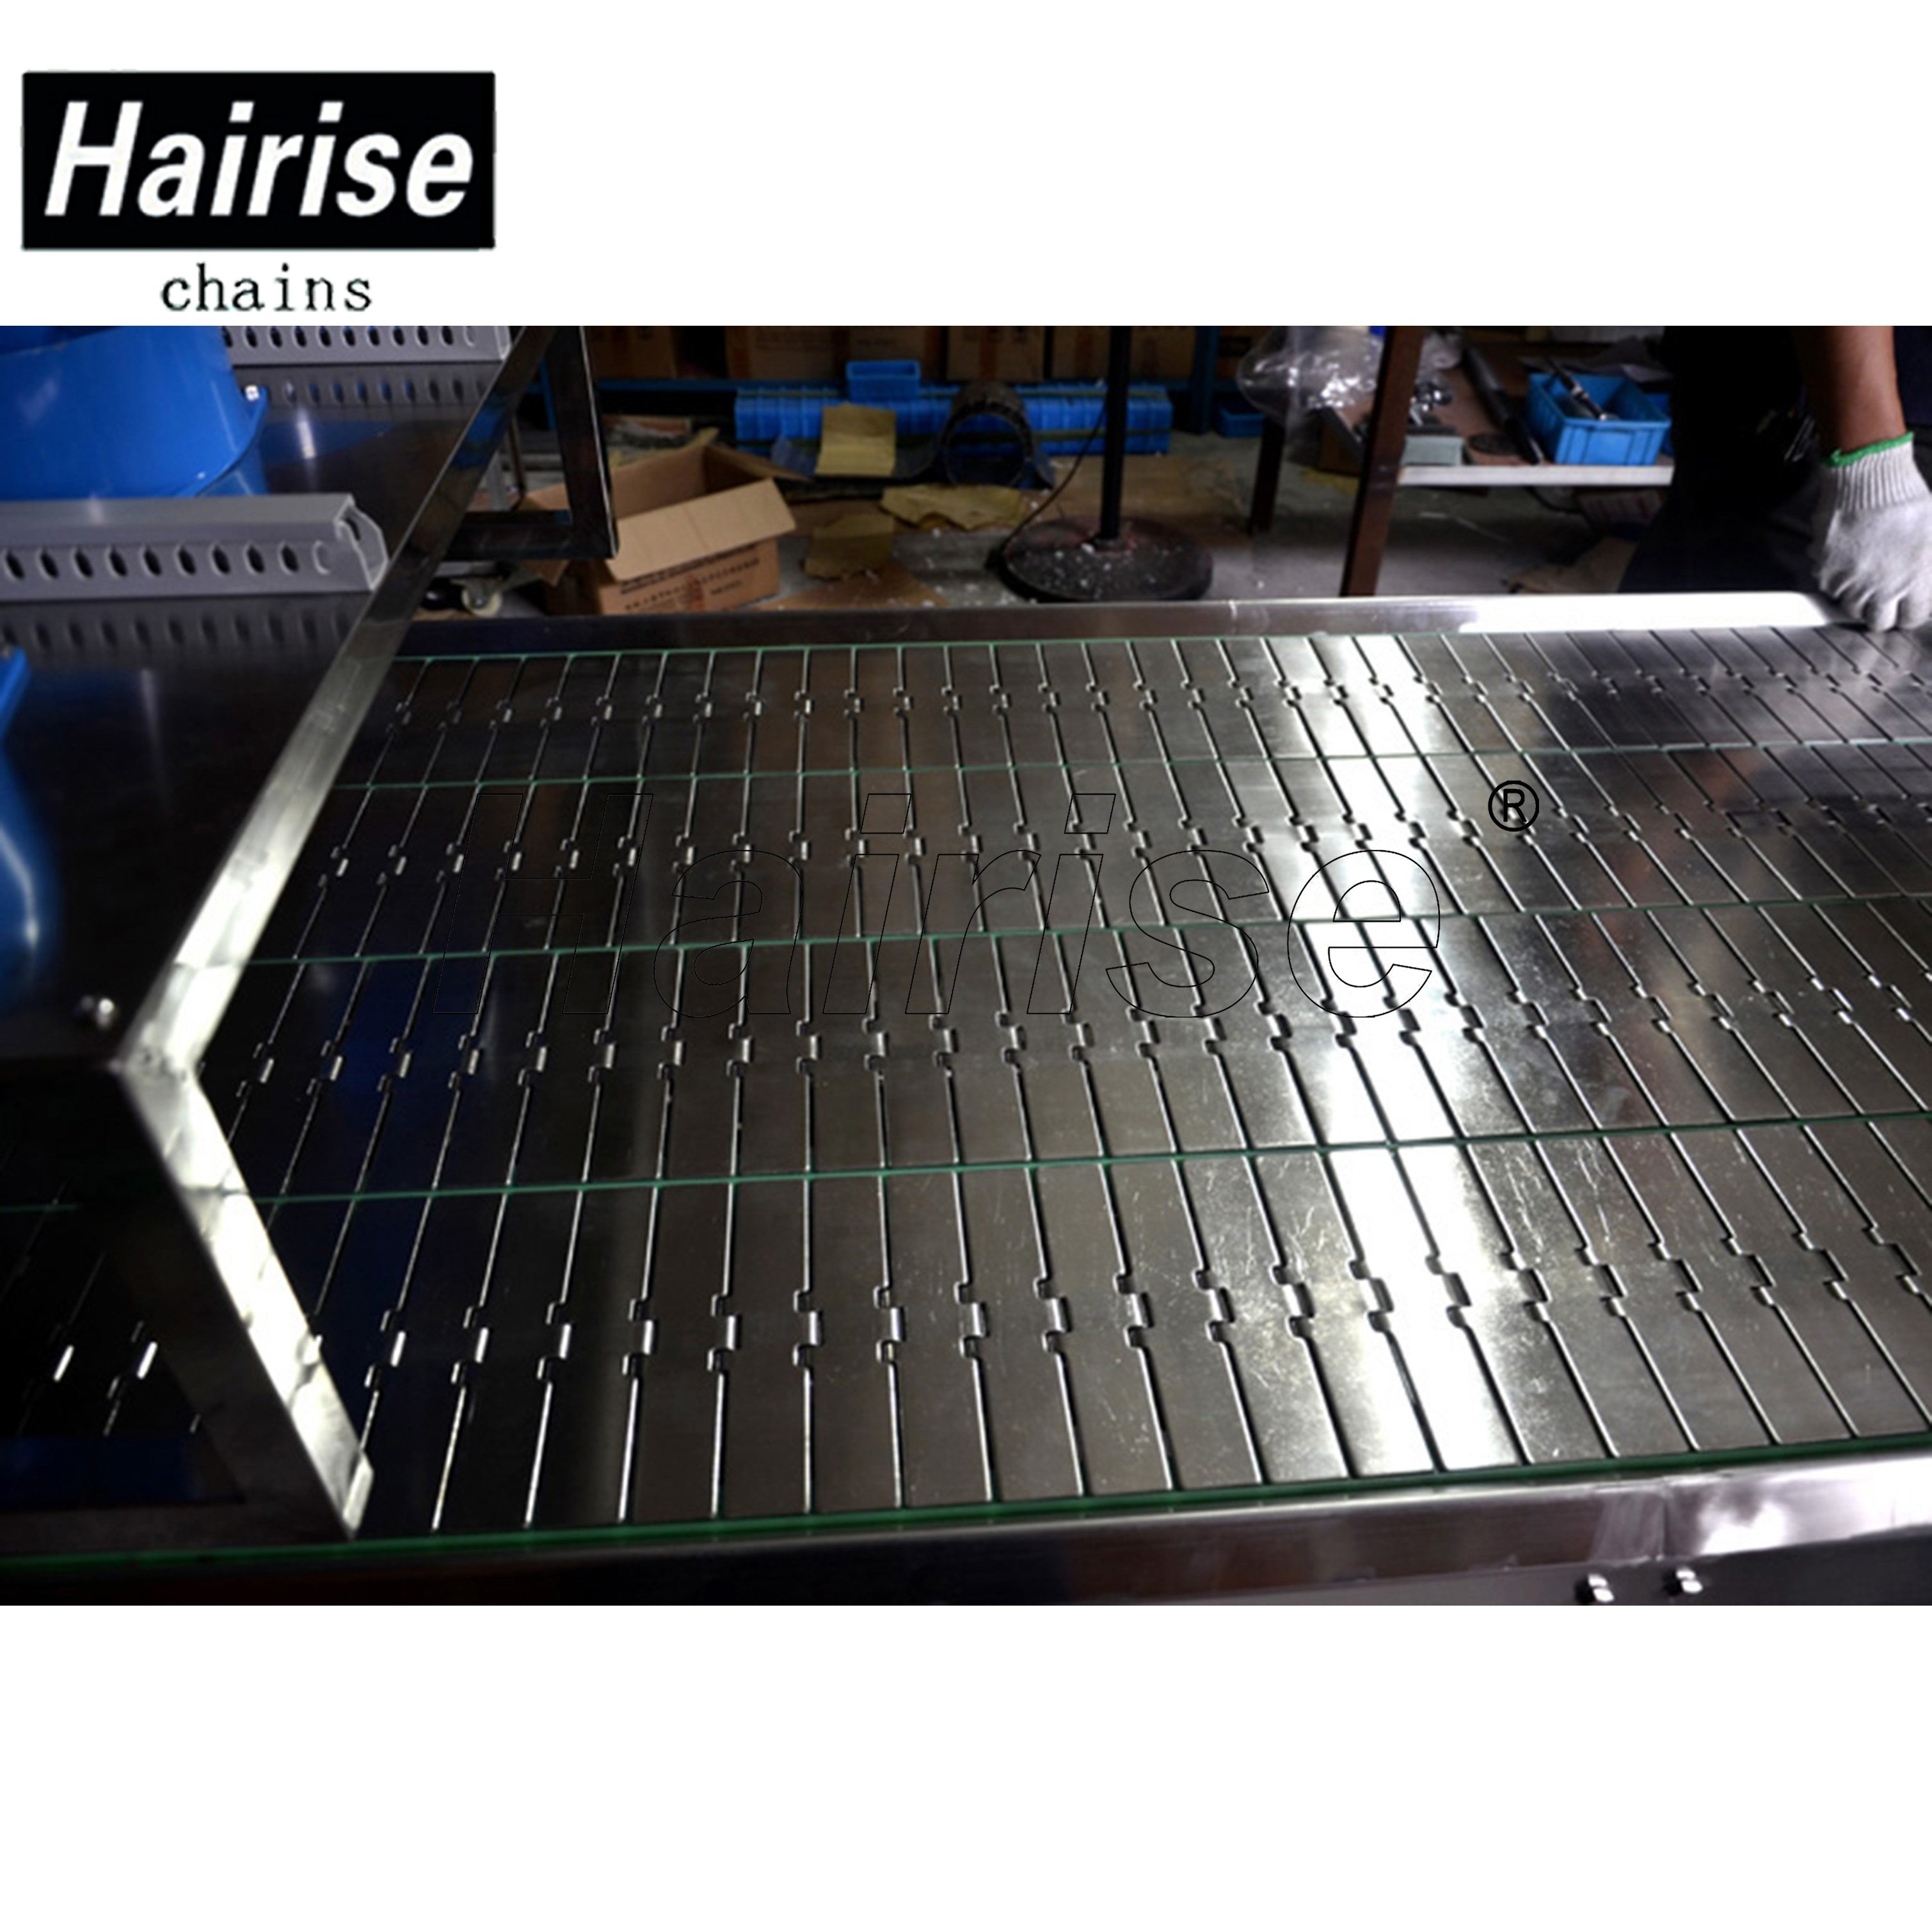 Hairise Straight Conveyor with Steel Table Top Chains